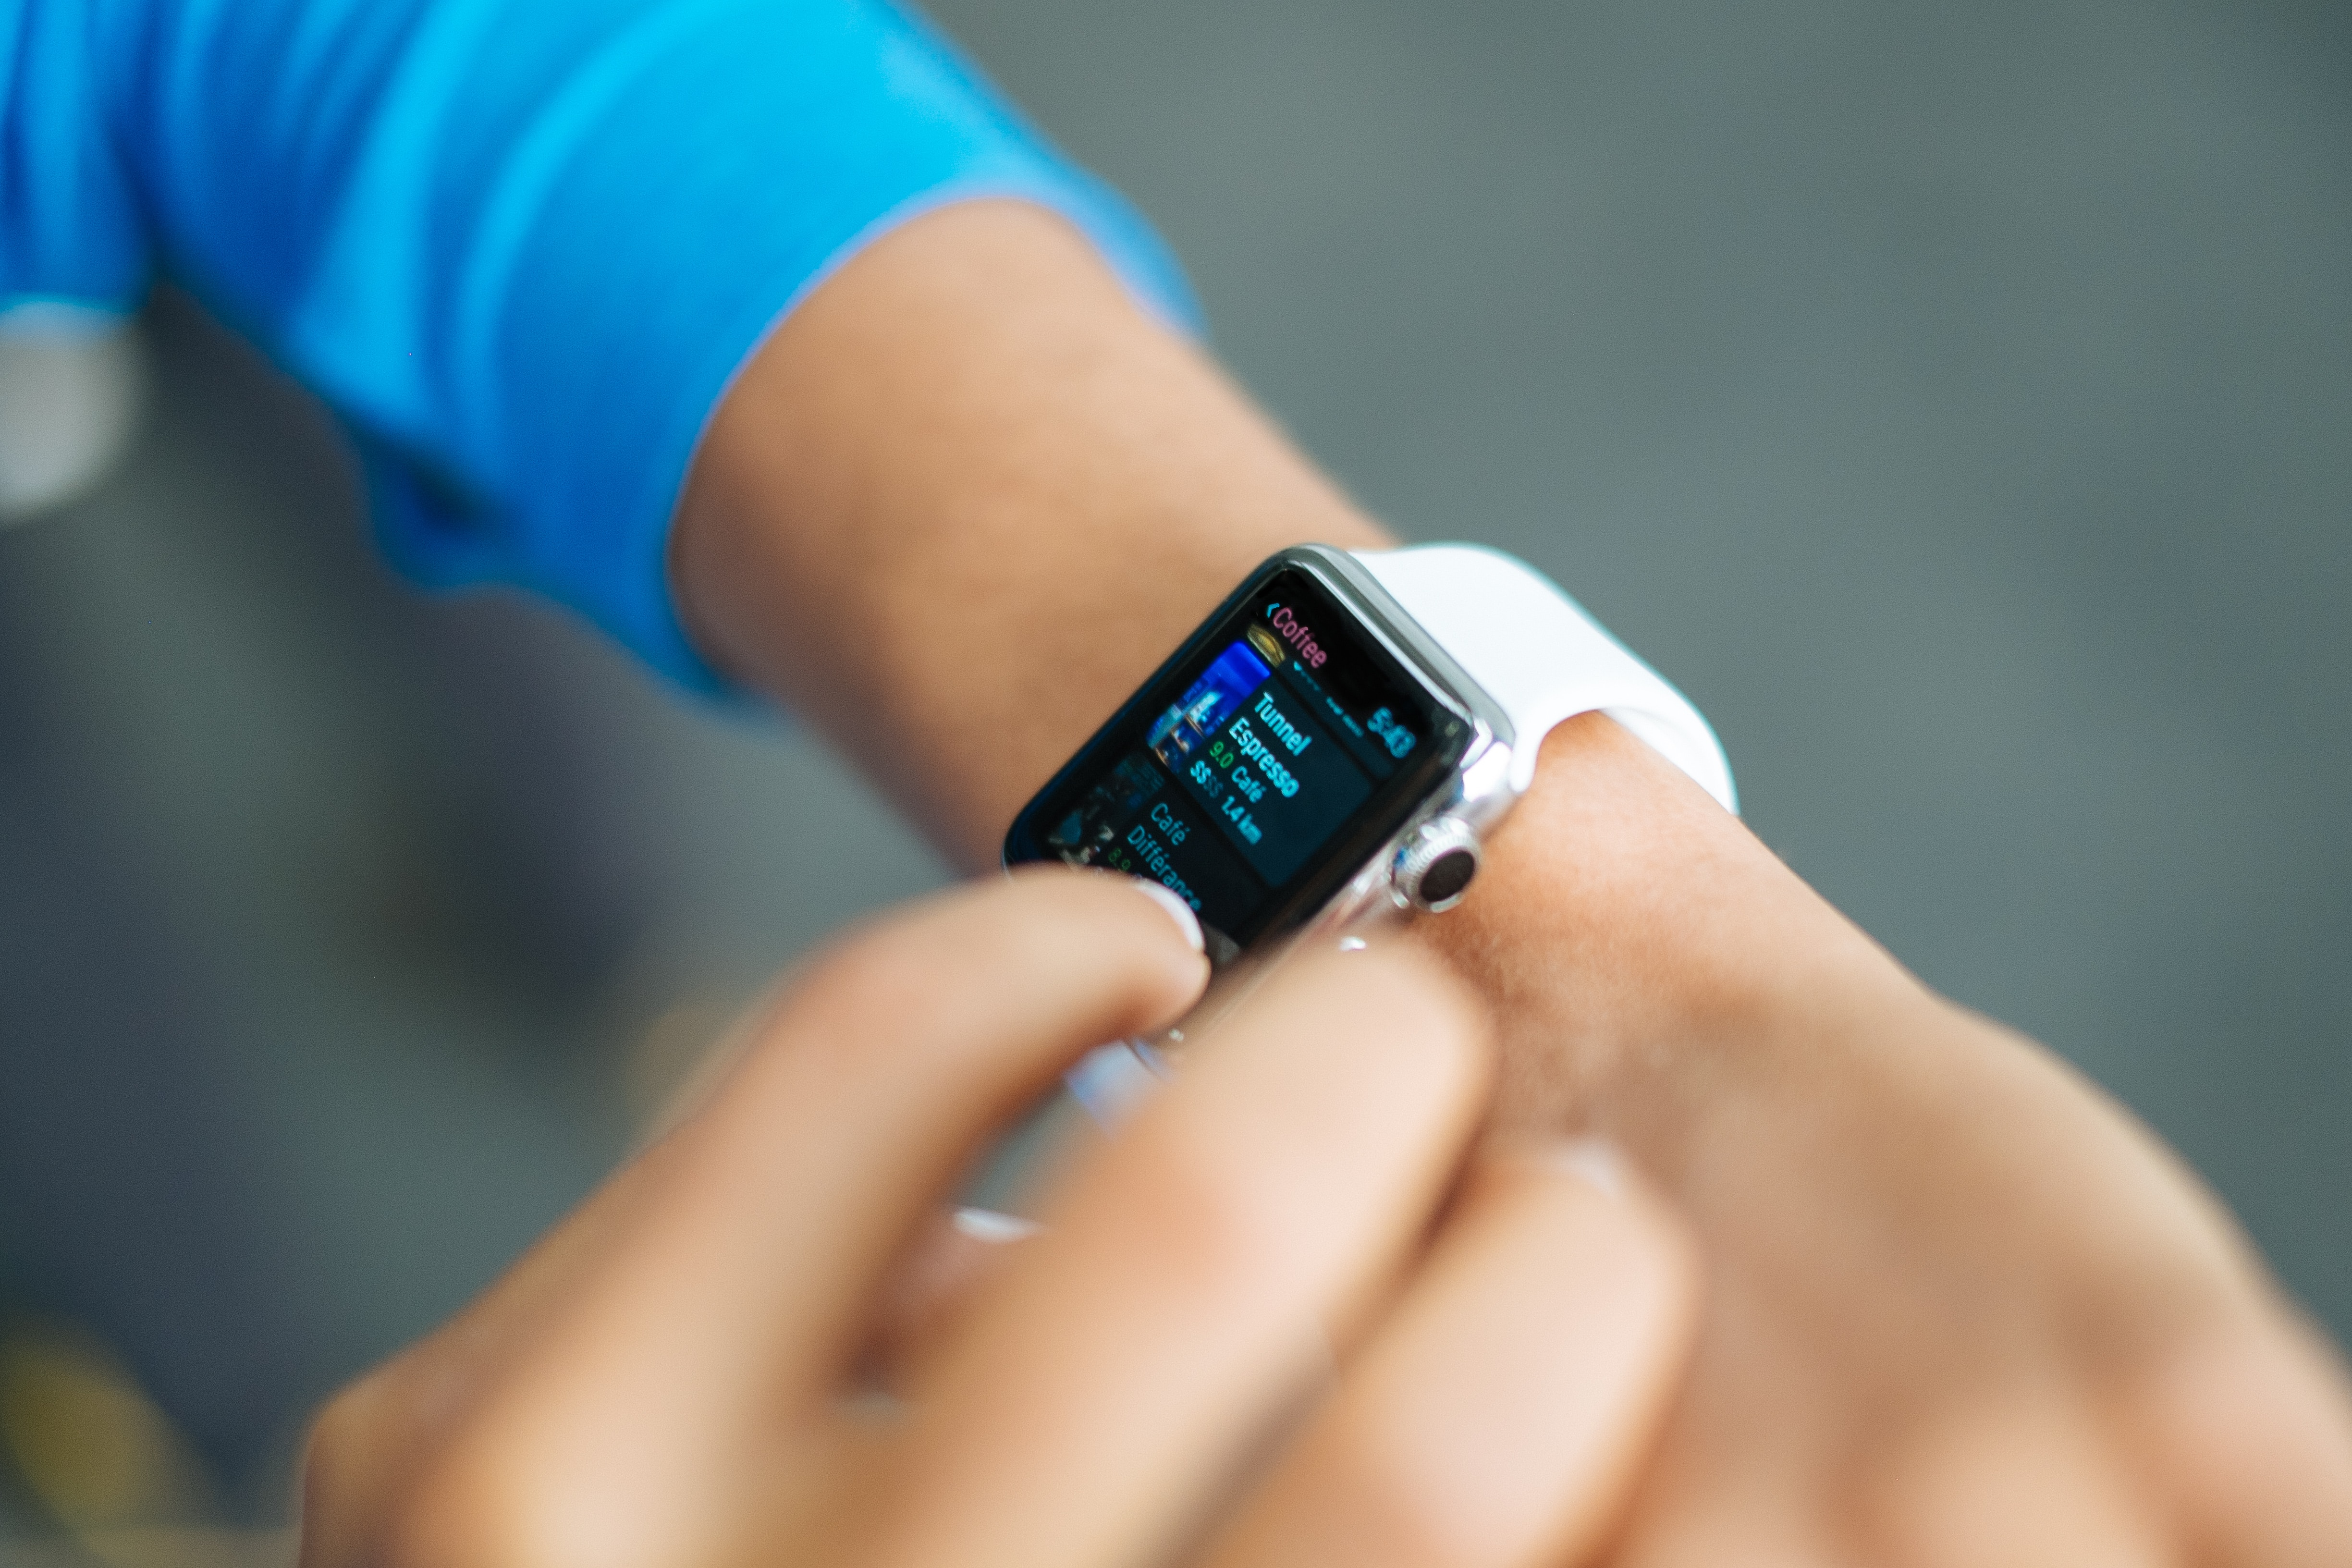 smartwatches that can make phone calls